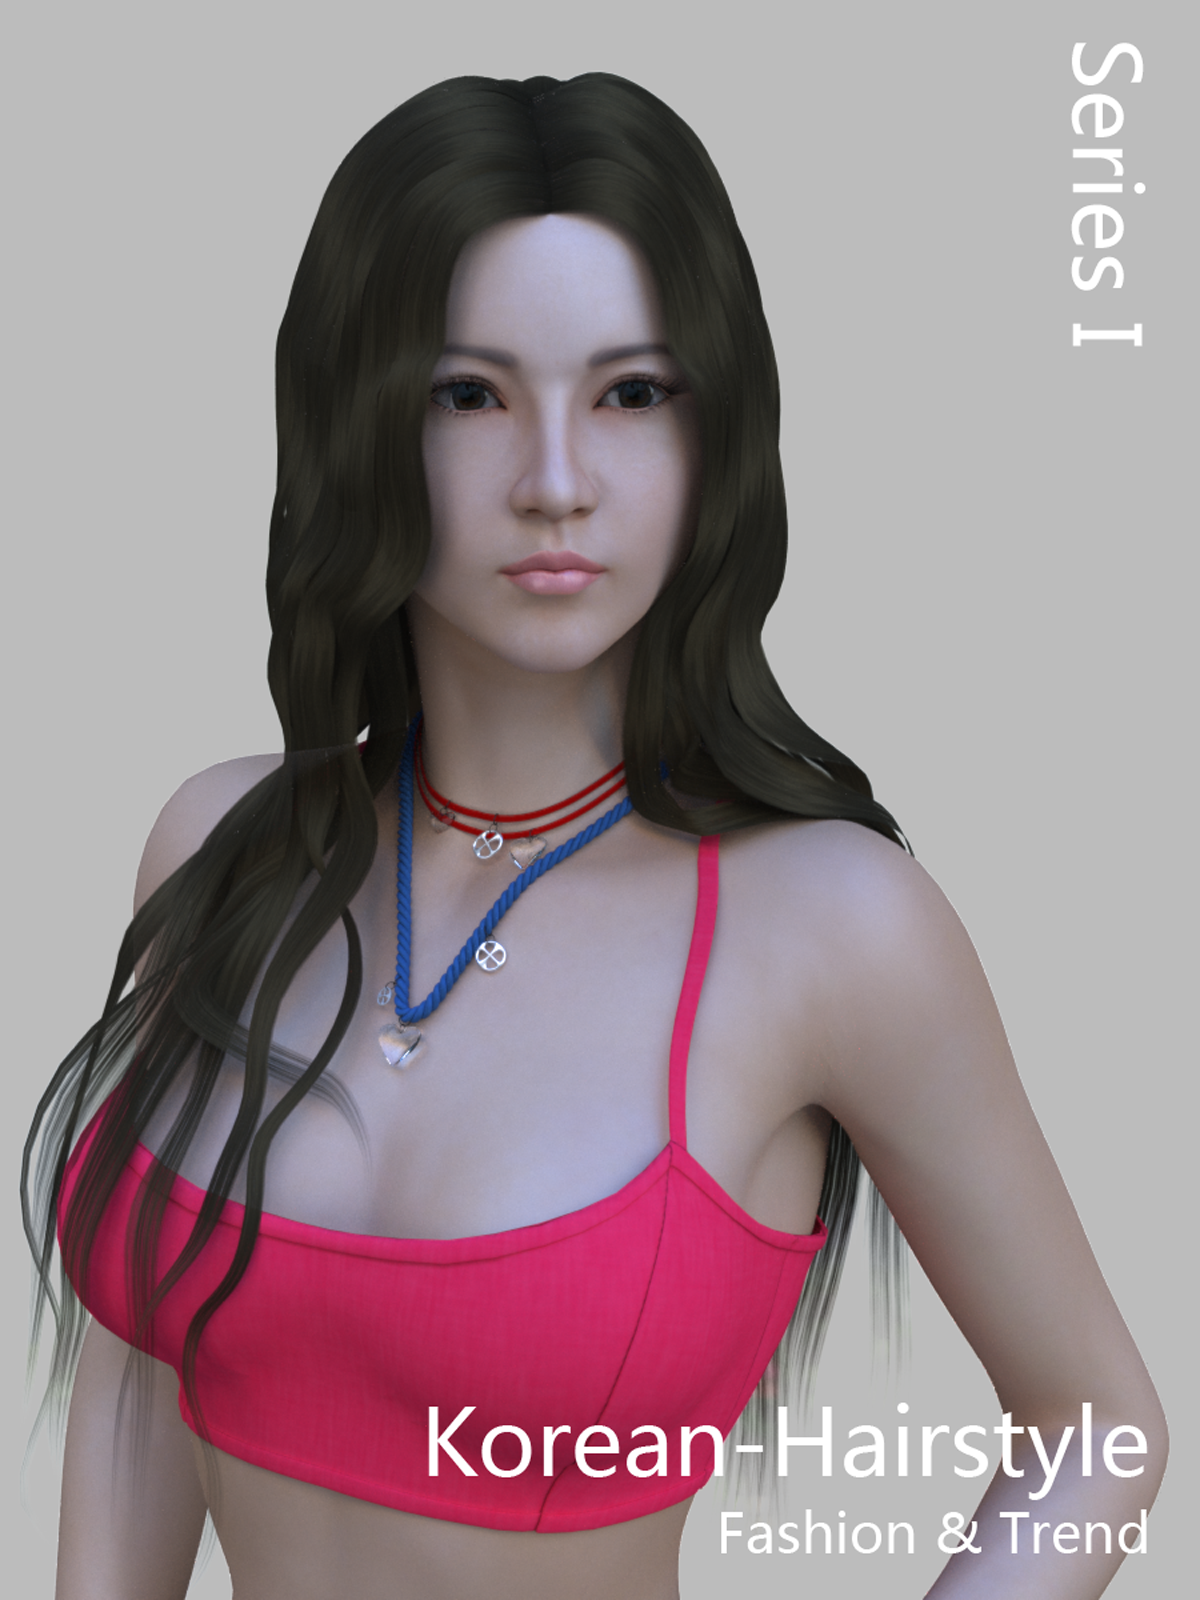 Korean Hairstyle Fashion I 3d Figure Assets Sikeijau